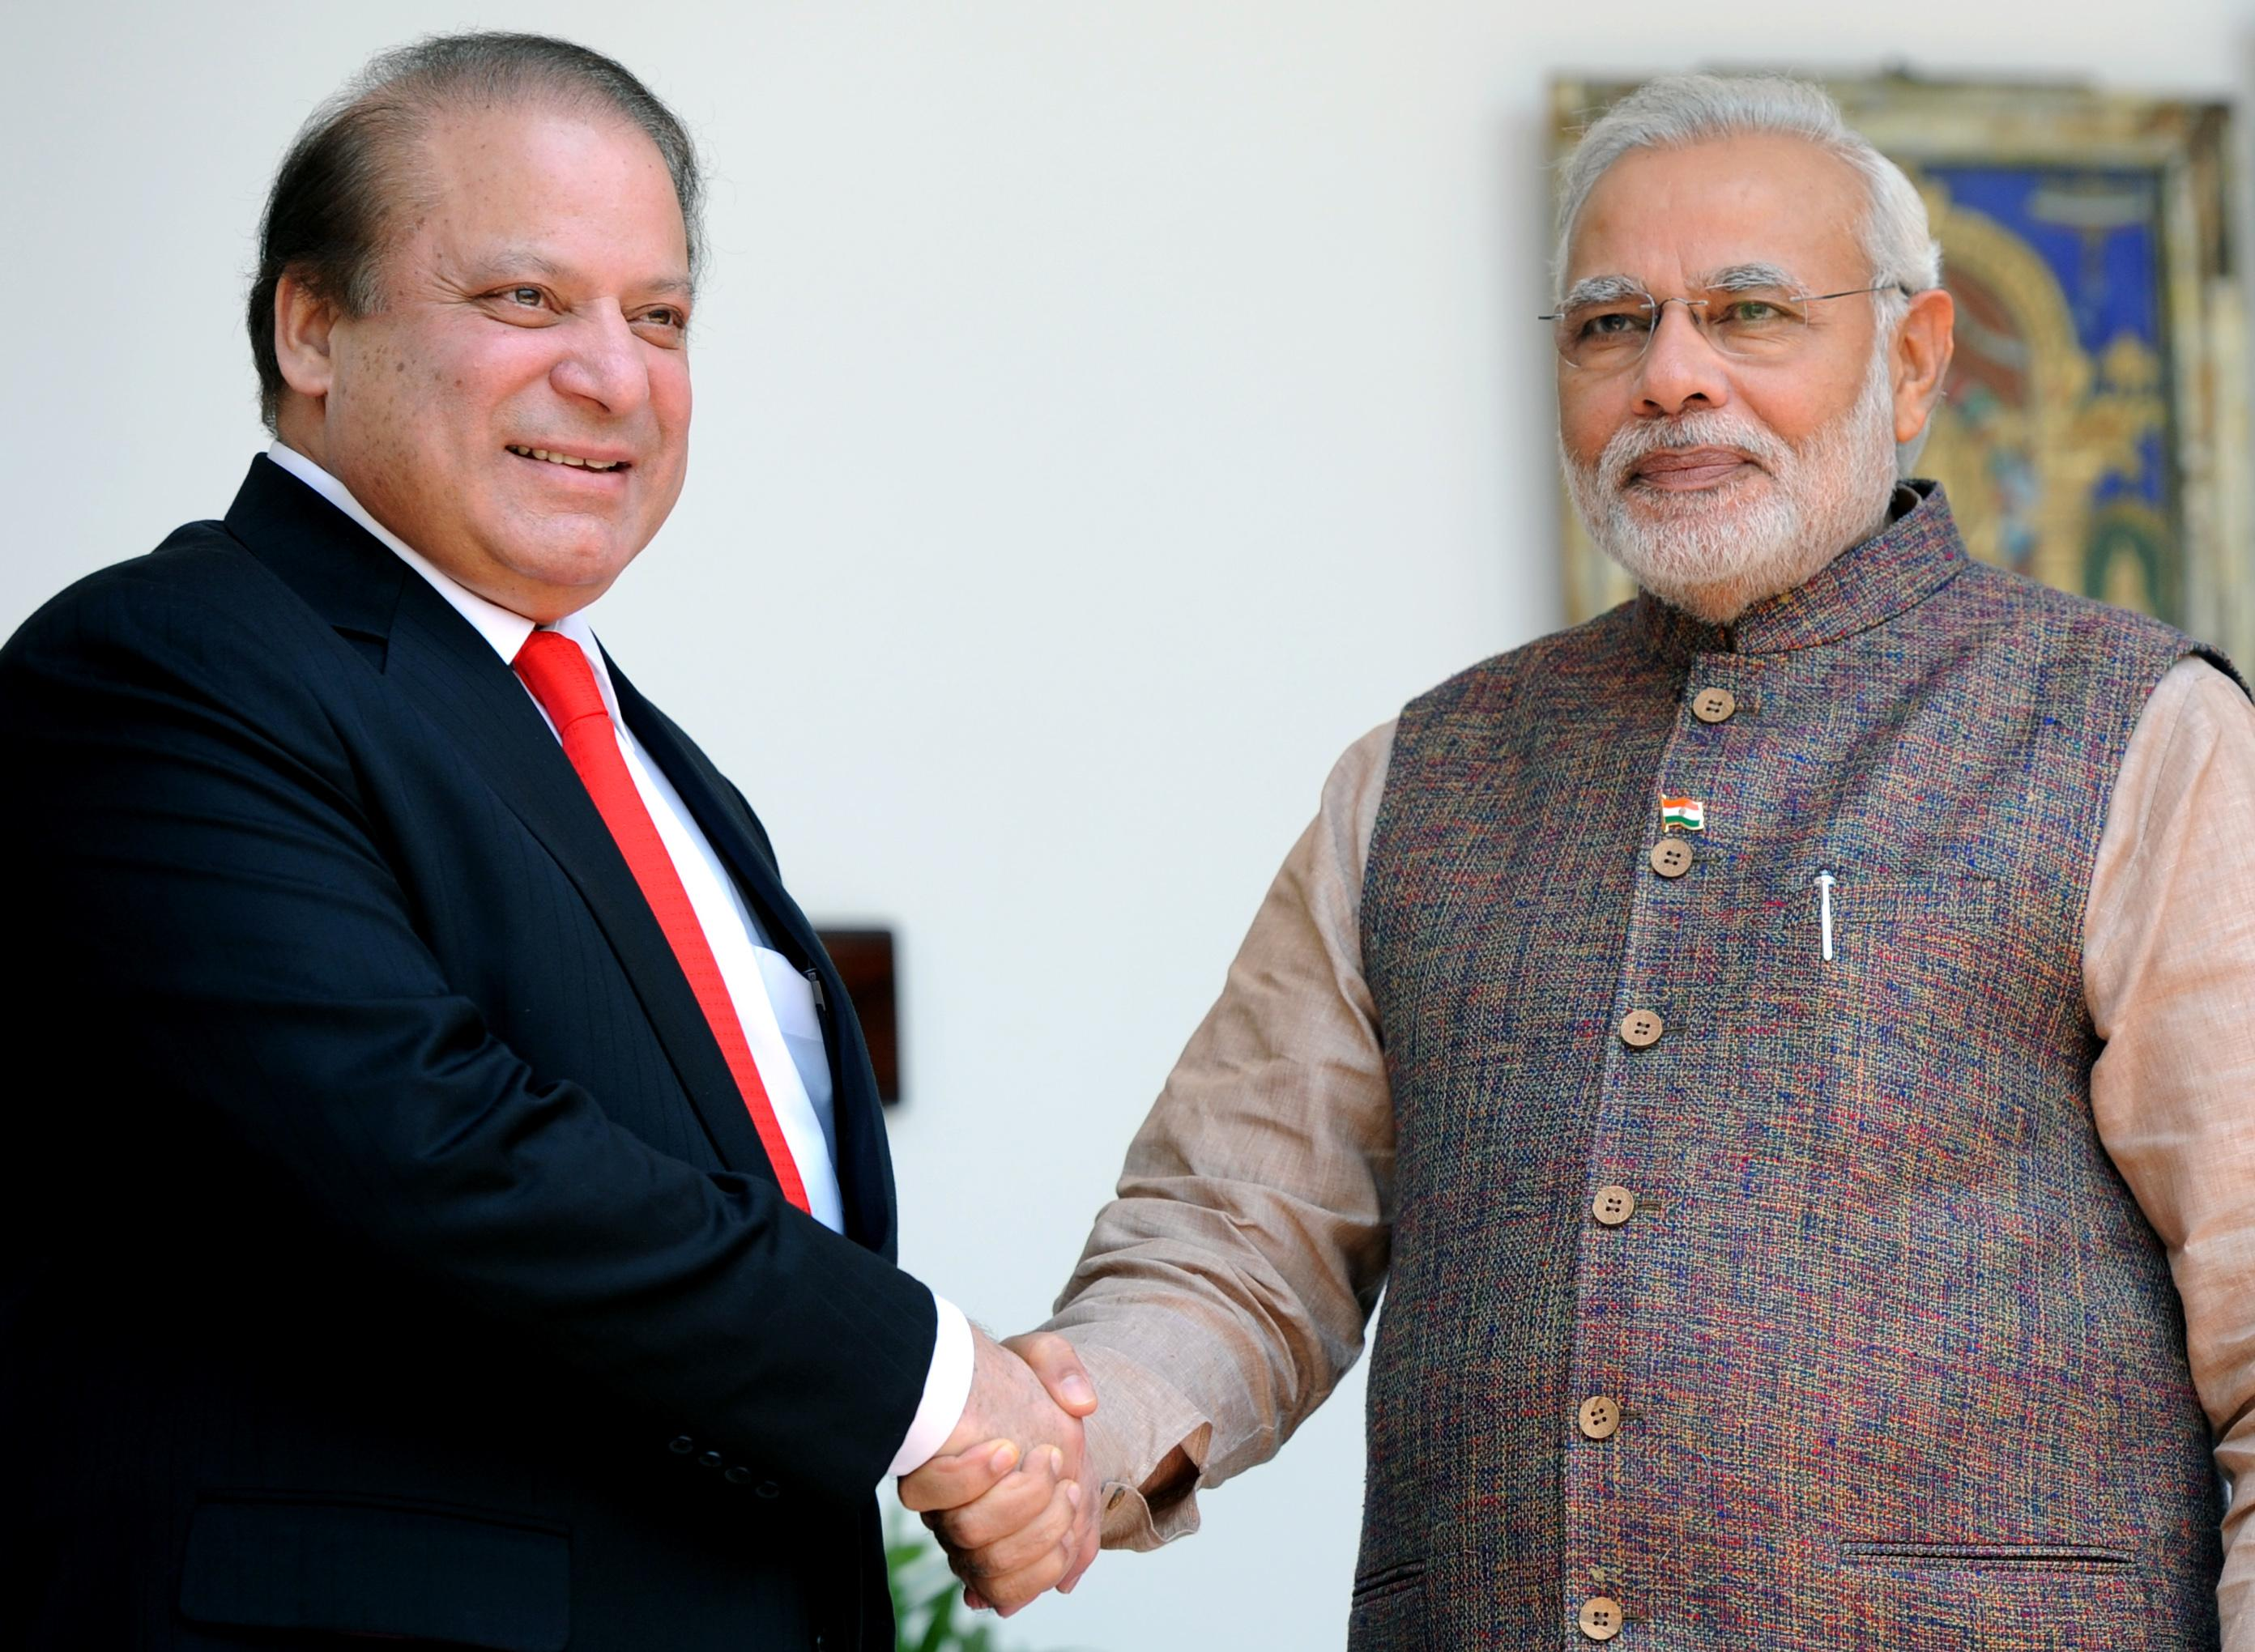 Prime Minister Narendra Modi (R) shakes hands with his Pakistani counterpart Nawaz Sharif (L) during a meeting at Hyderabad House in New Delhi on May 27, 2014. (Photo: IANS)